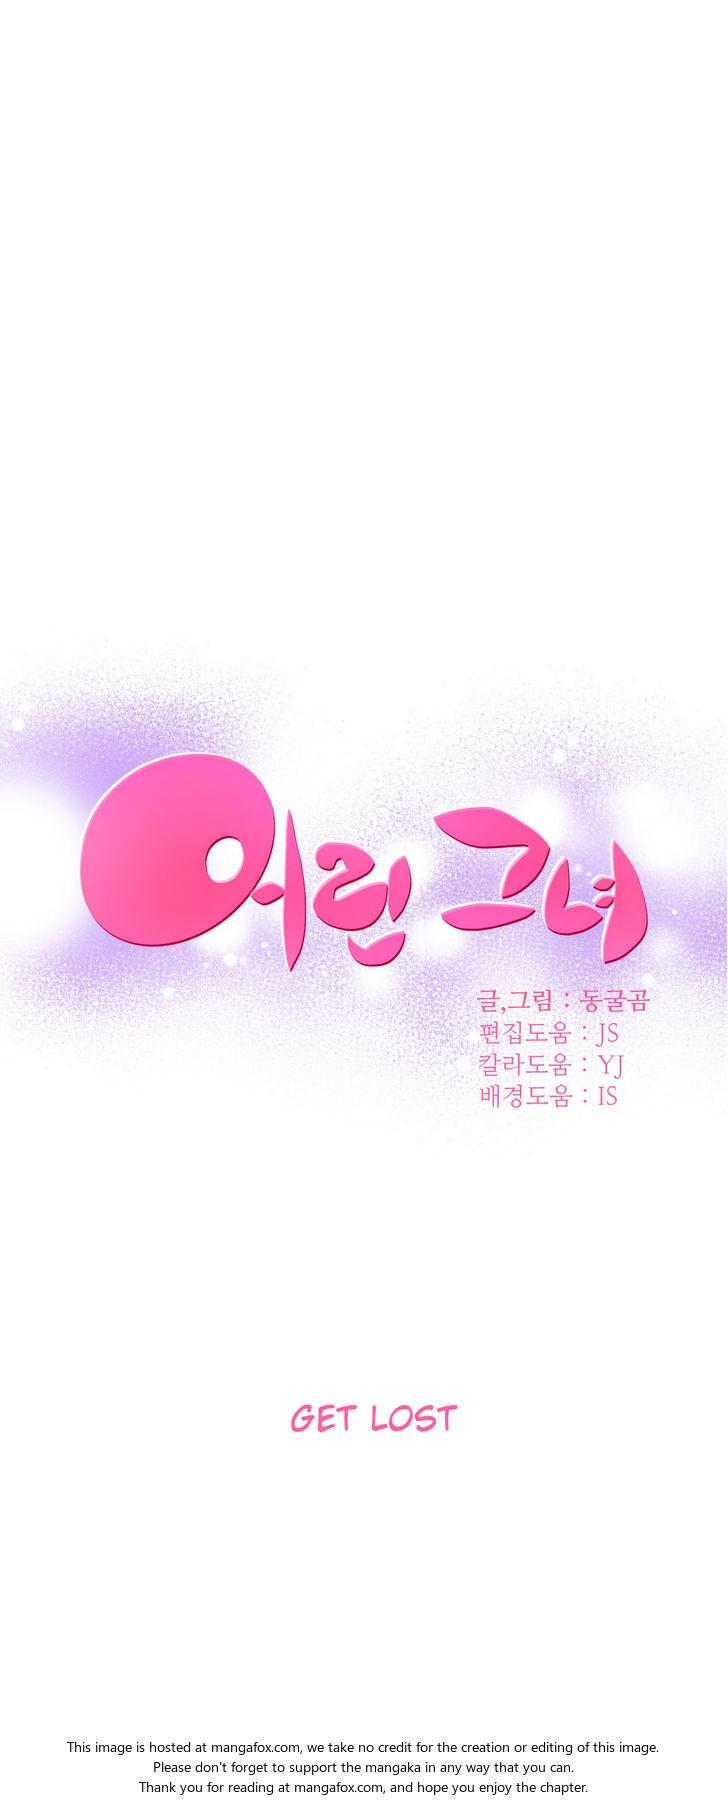 [Donggul Gom] She is Young (English) Part 1/2 963